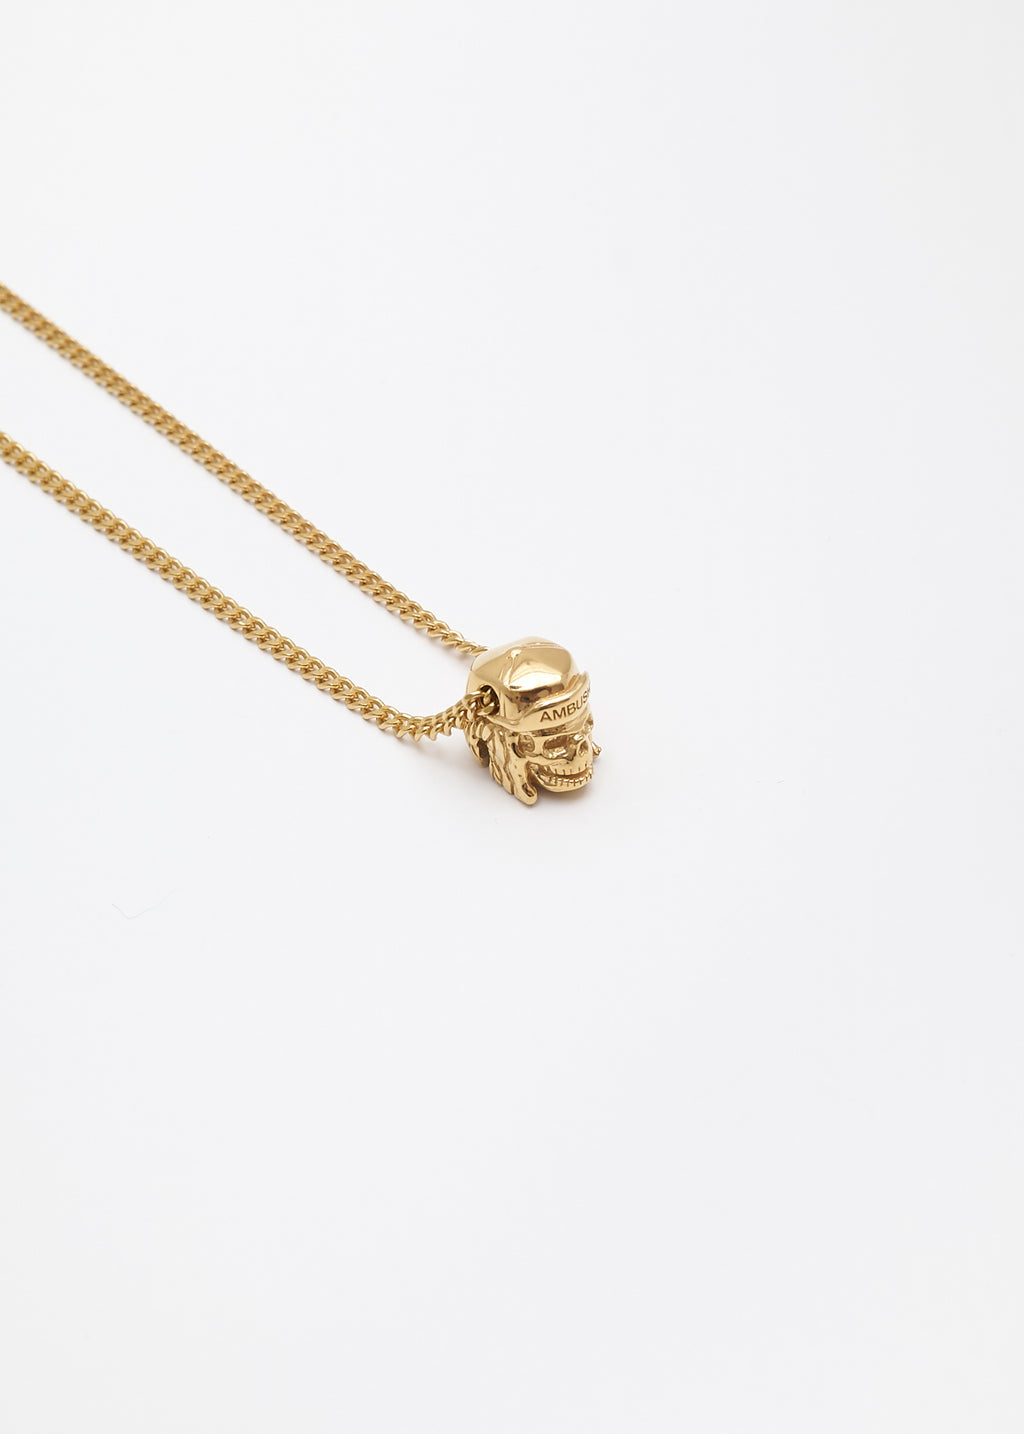 Gold Nobo Skull Charm Necklace